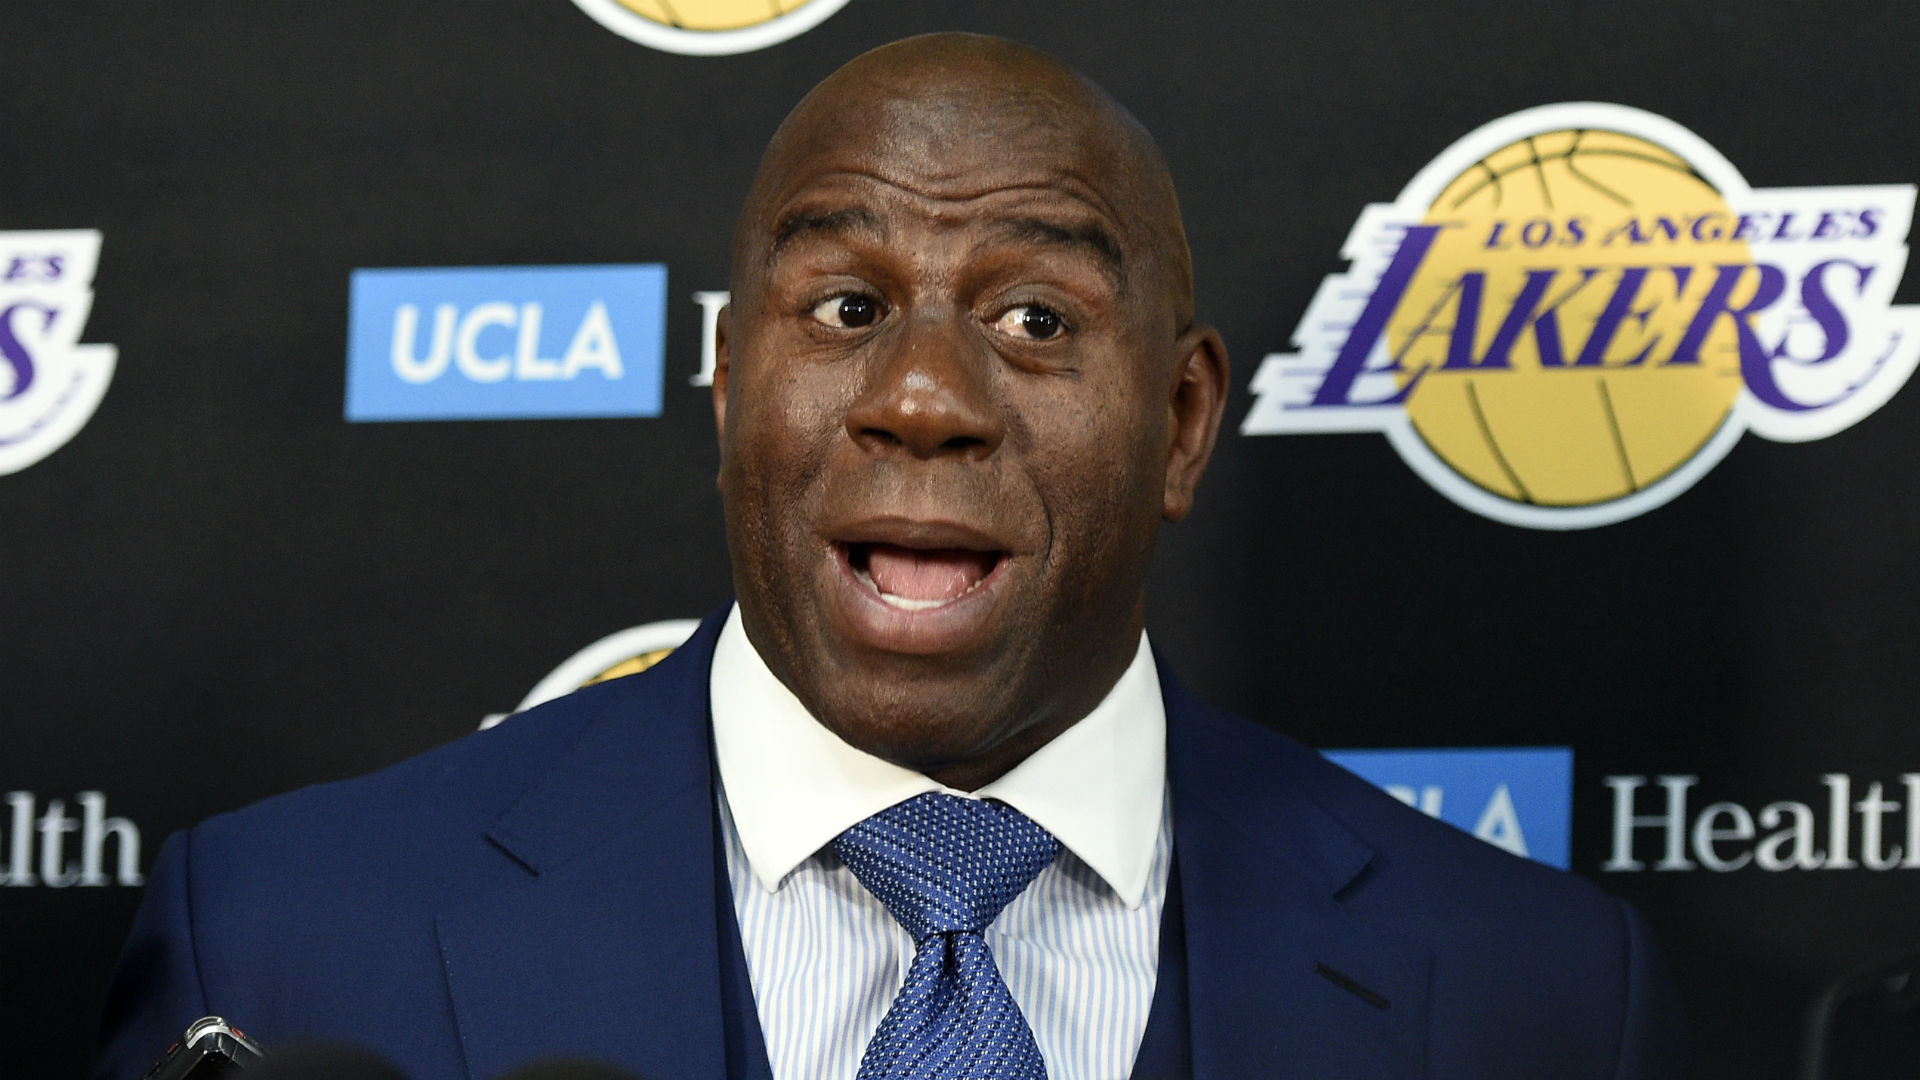 Magic Johnson congratulates Lakers over reported Davis trade